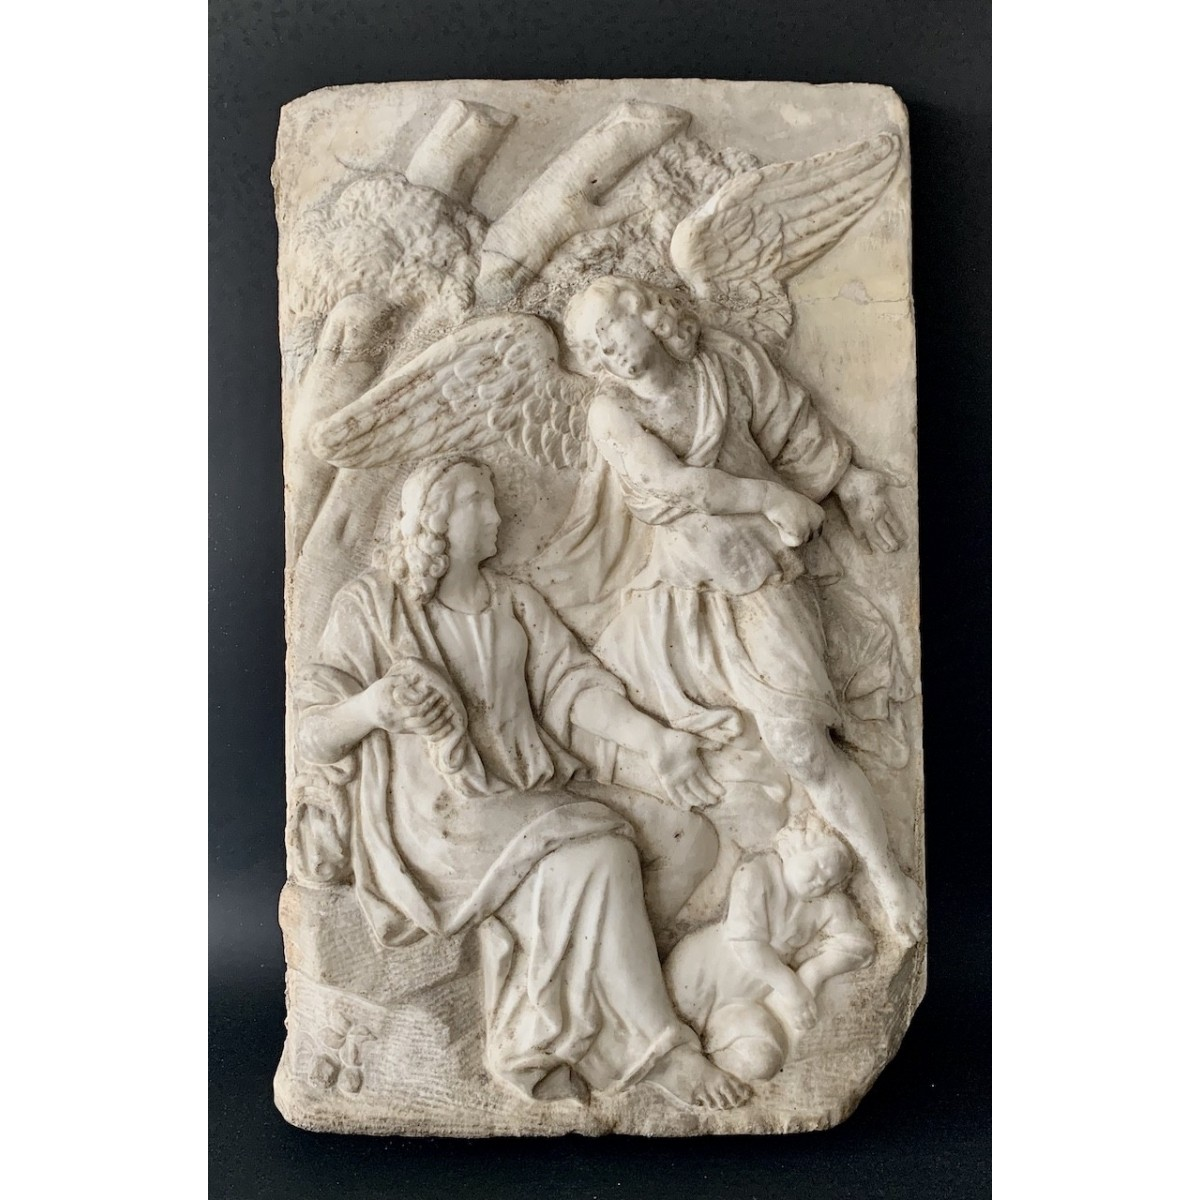 Bas-relief in white marble 17th